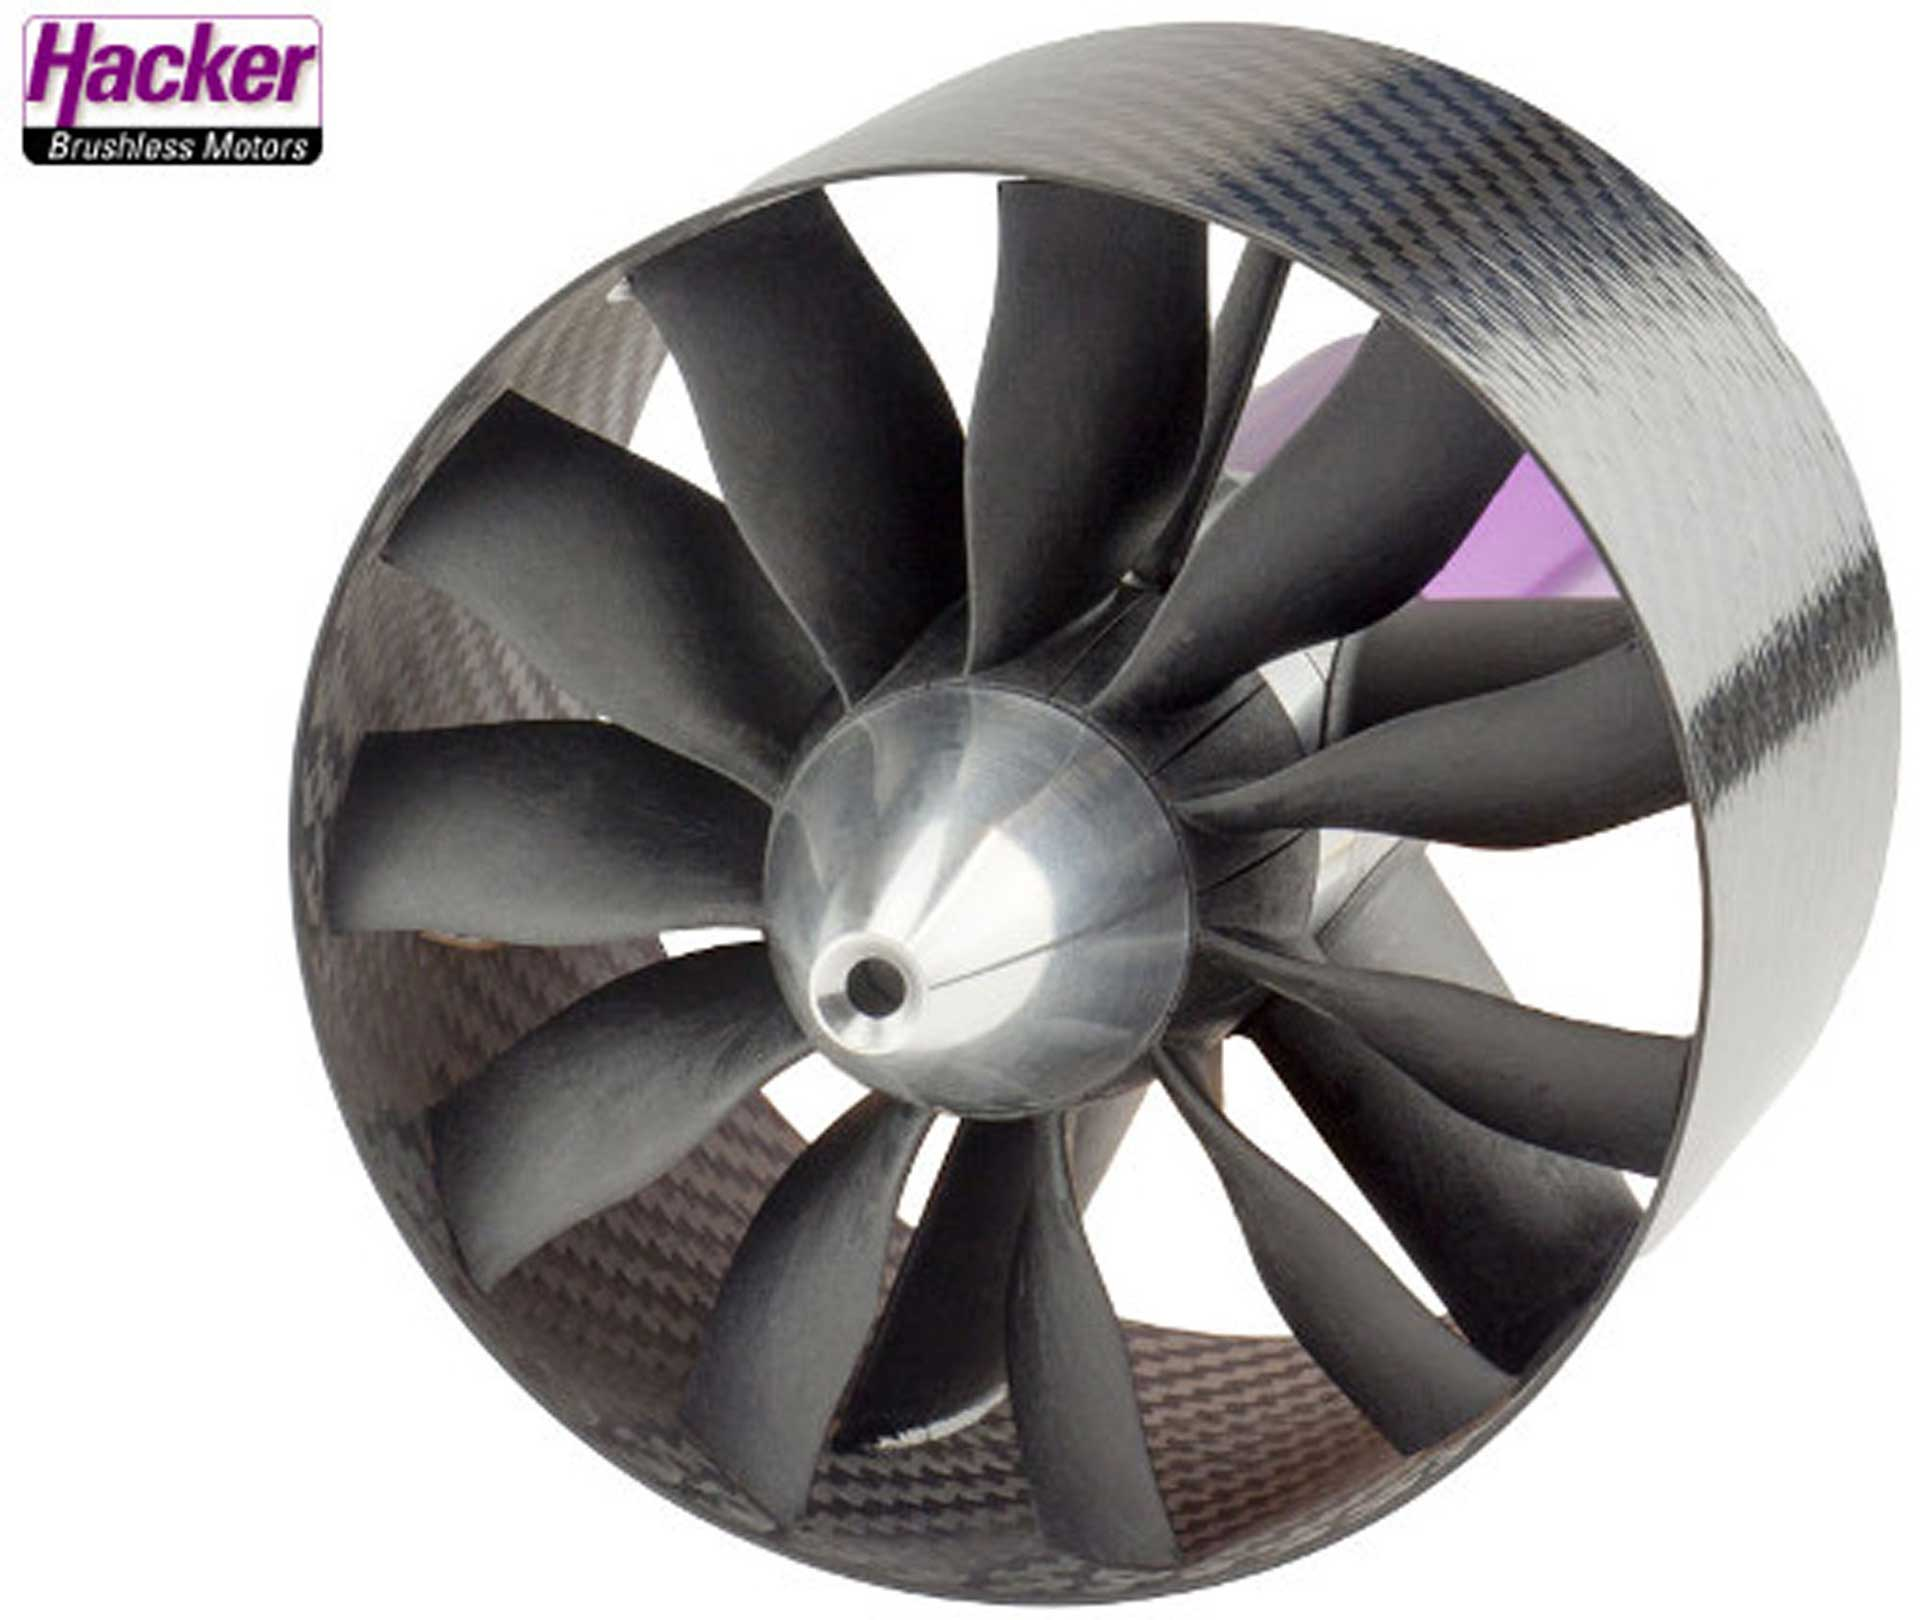 HACKER IMPELLER STREAM-FAN 120/700